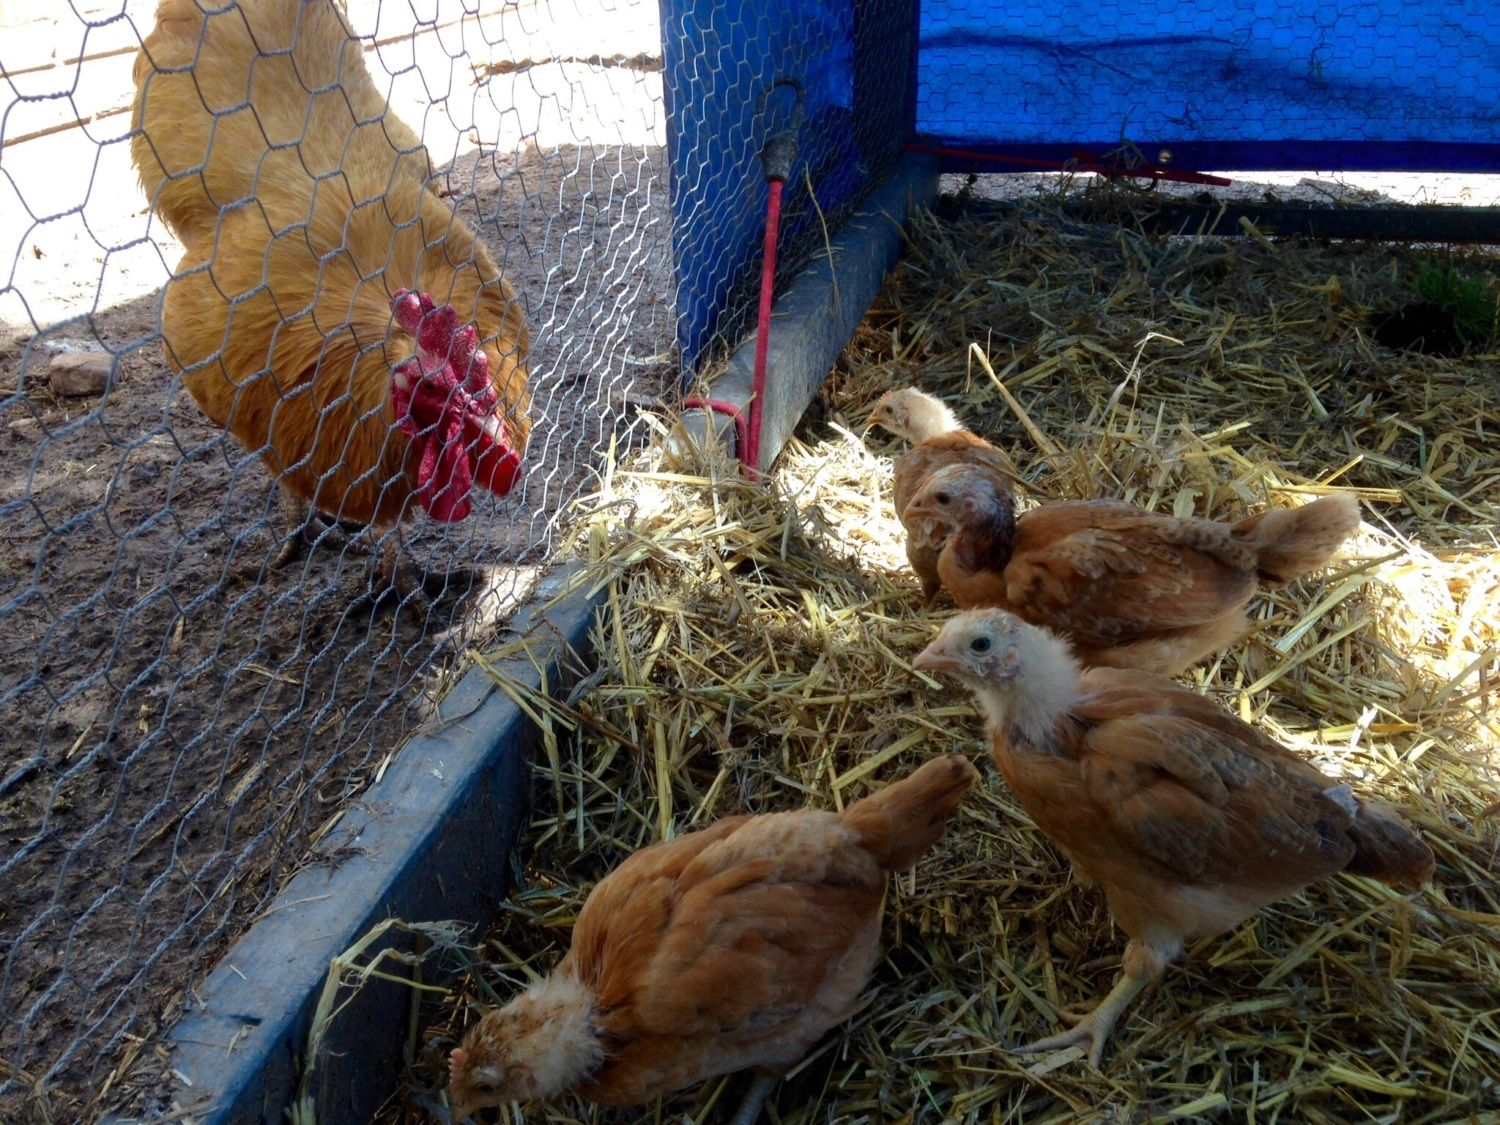 Proud dad inspecting his chicks. He was already clucking to them and pecking the ground.